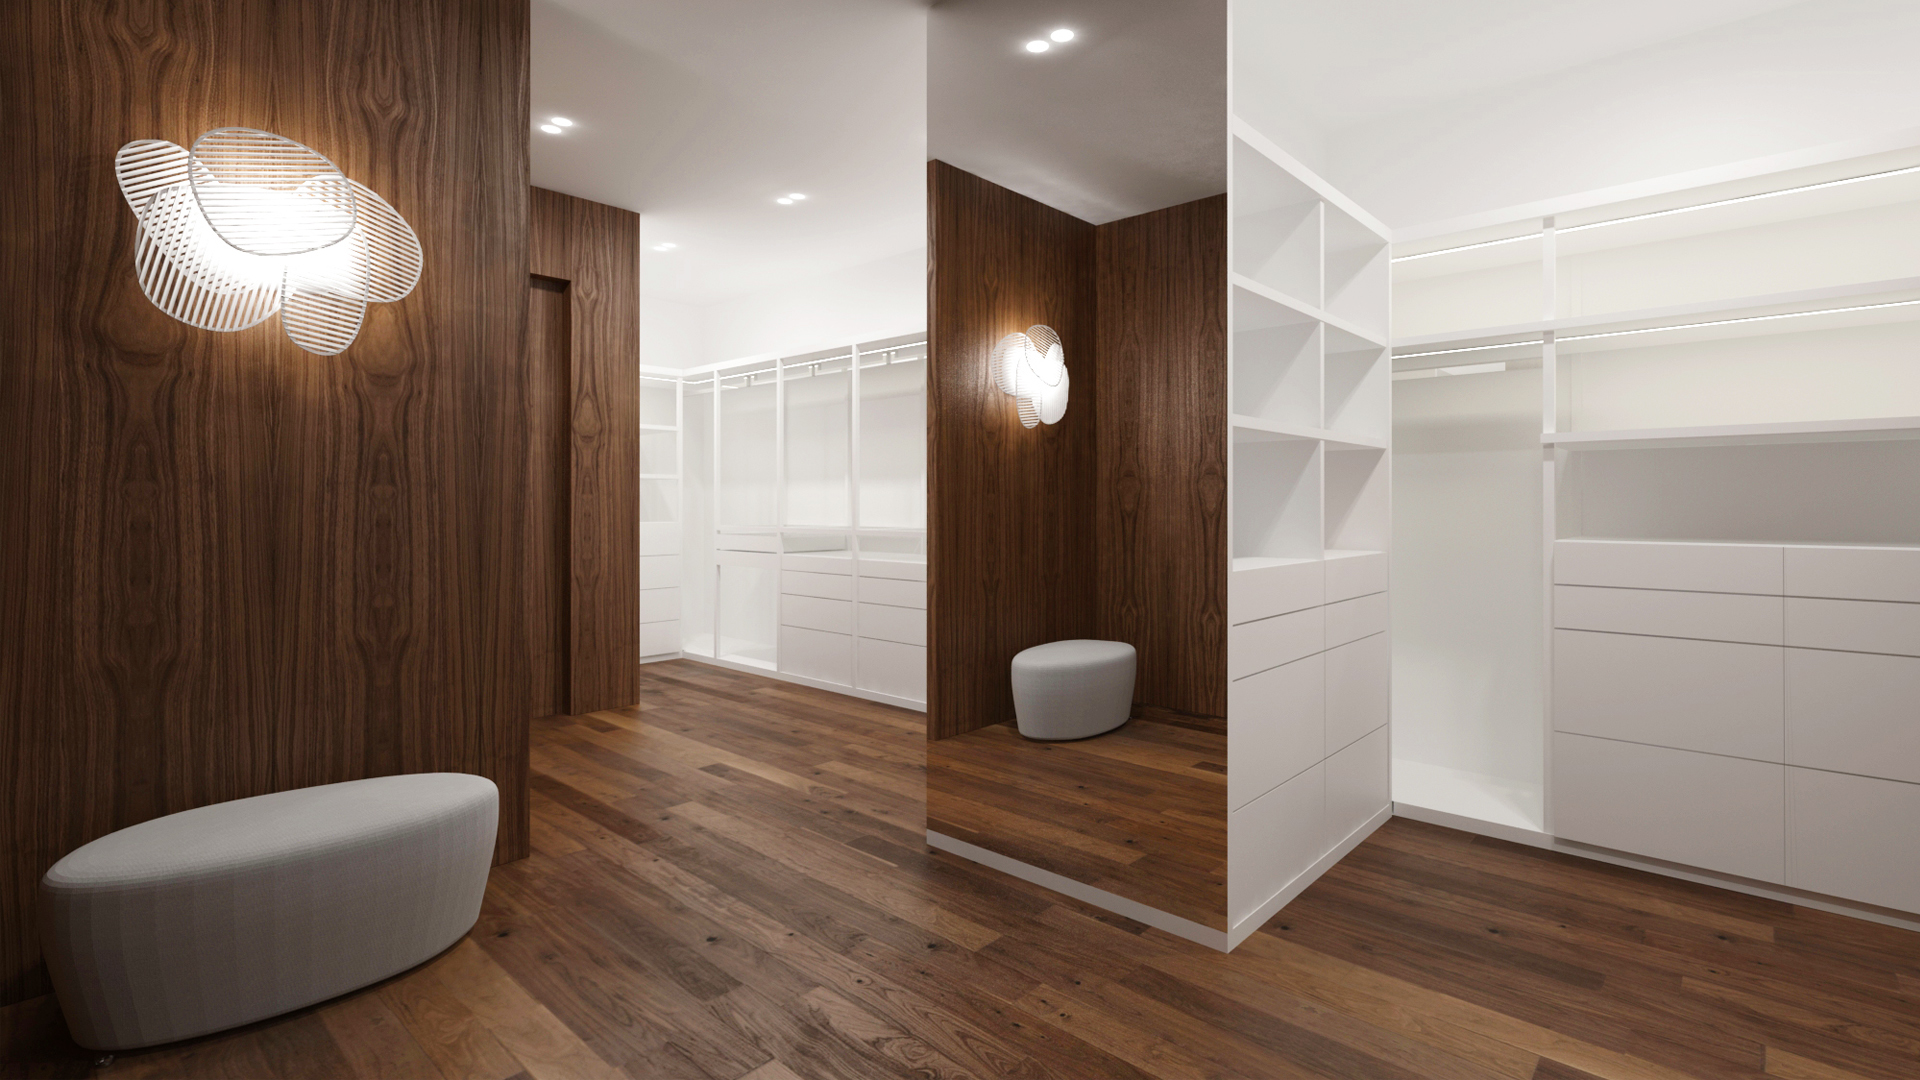 navrh interieru satnika, navrh satnika, interier satnika, interierovy dizajn, interierovy dizajner, veronika paluchova, wardrobe design, walnut design, orech, dyha, design room, foscarini light, walnut interior, walnut penthouse interior, penthouse design, penthouse interior design, moroso pouf